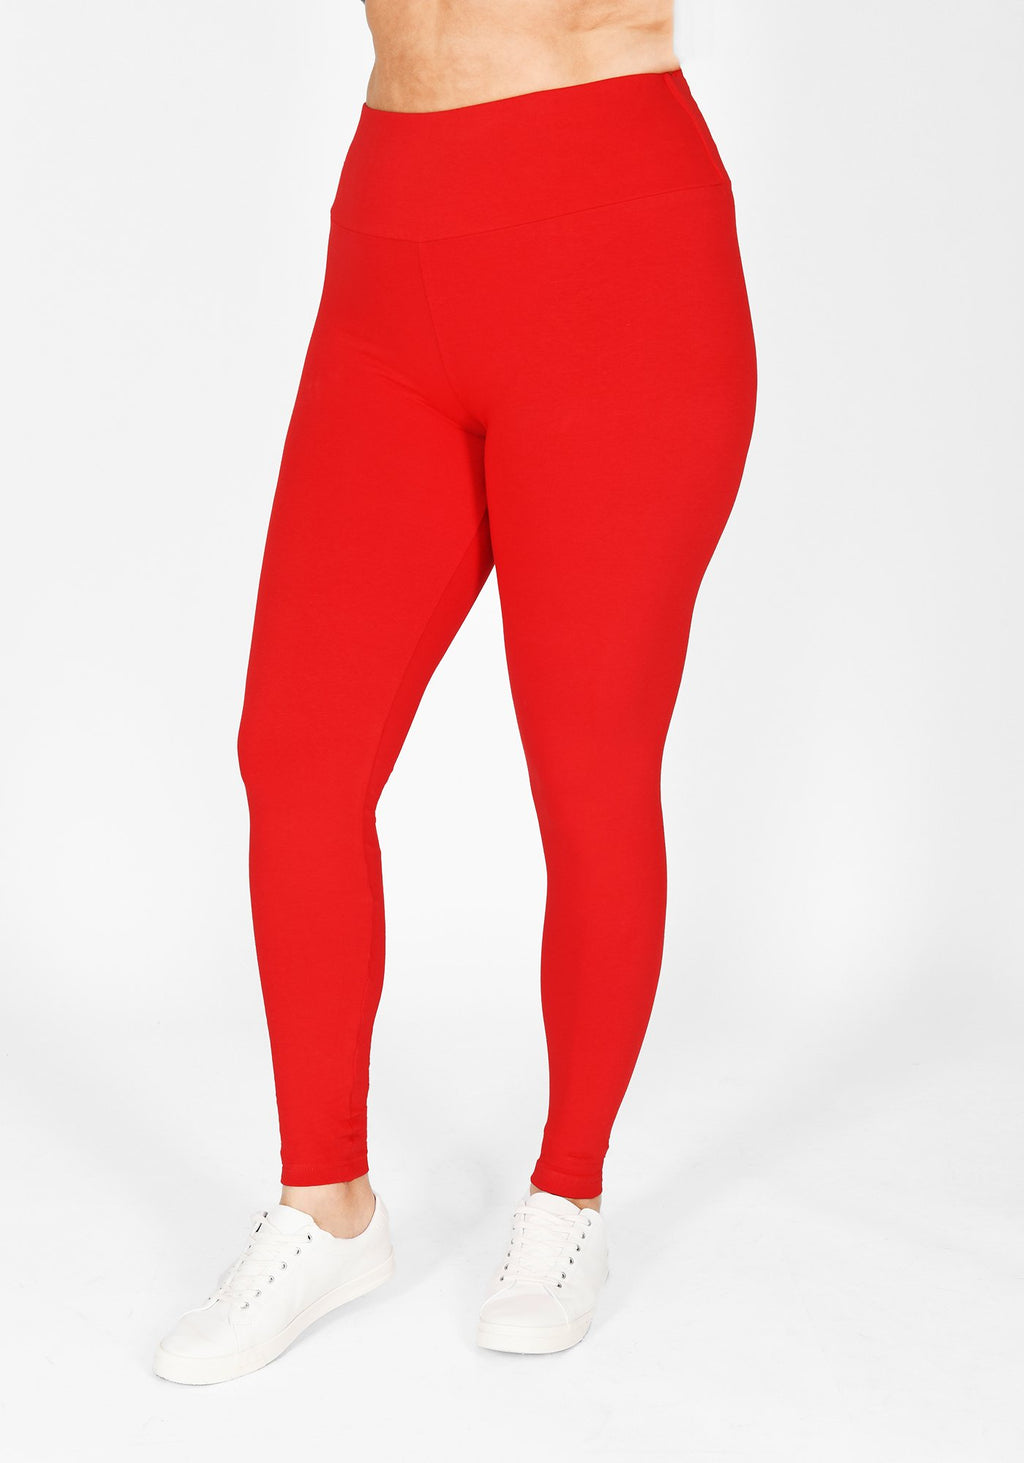 Plus Size Poppy Red High Waisted Leggings 1